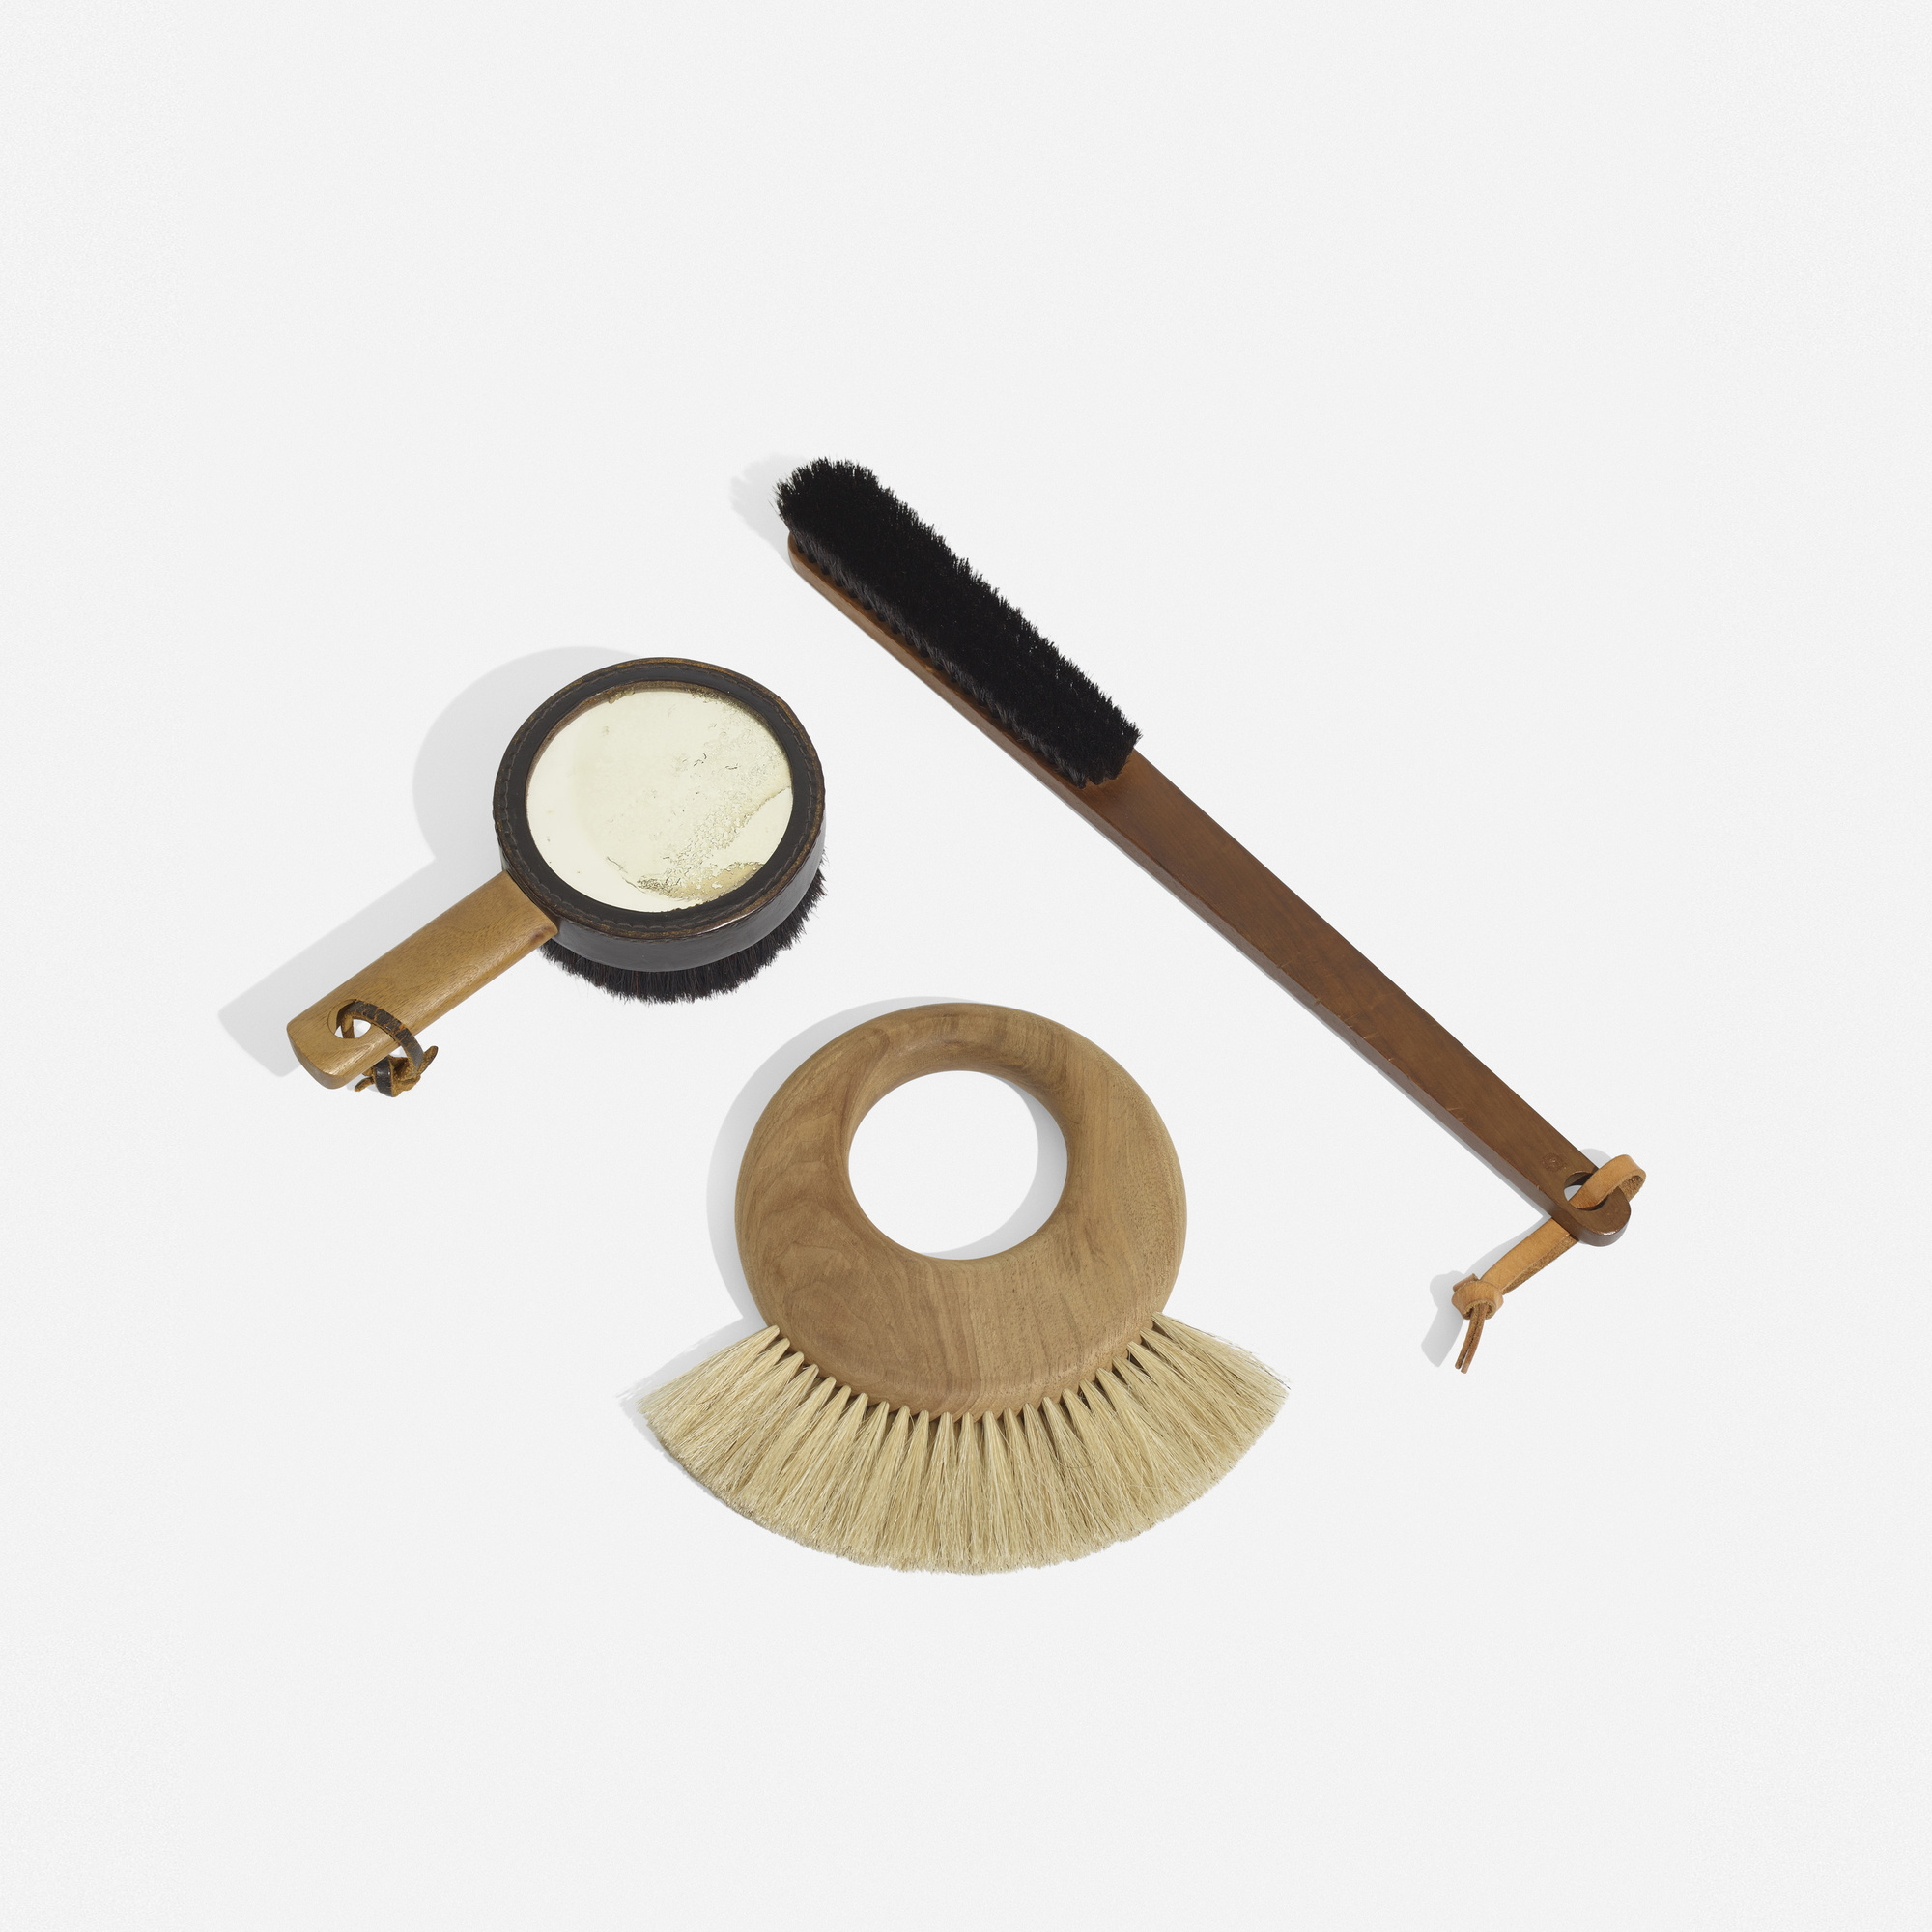 102: Carl Auböck II and Carl Auböck III / collection of three clothes brushes (1 of 2)